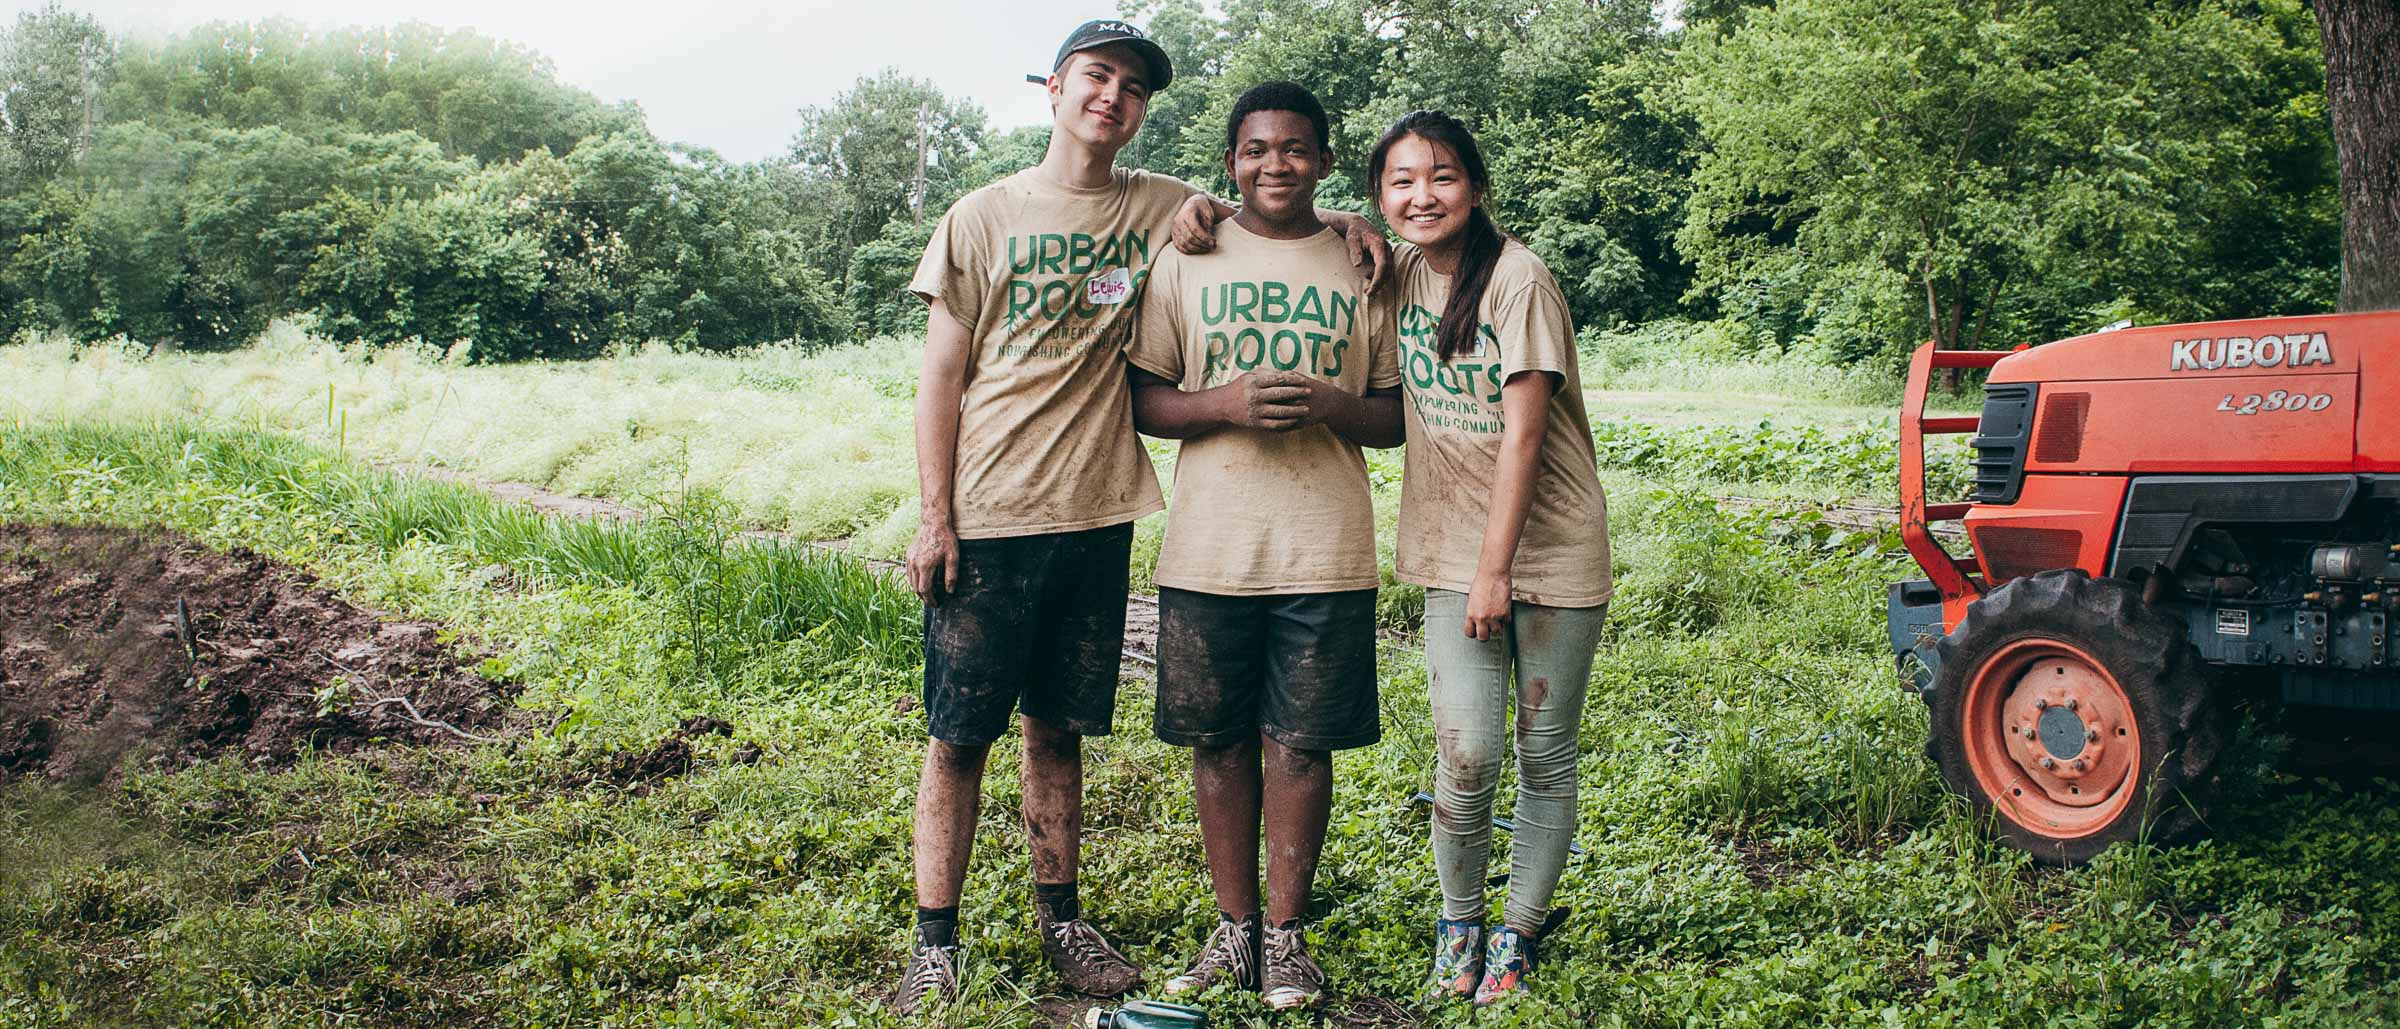 Urban-Roots-Farm-Austin-TX-Commercial Youth Teamwork Portrait